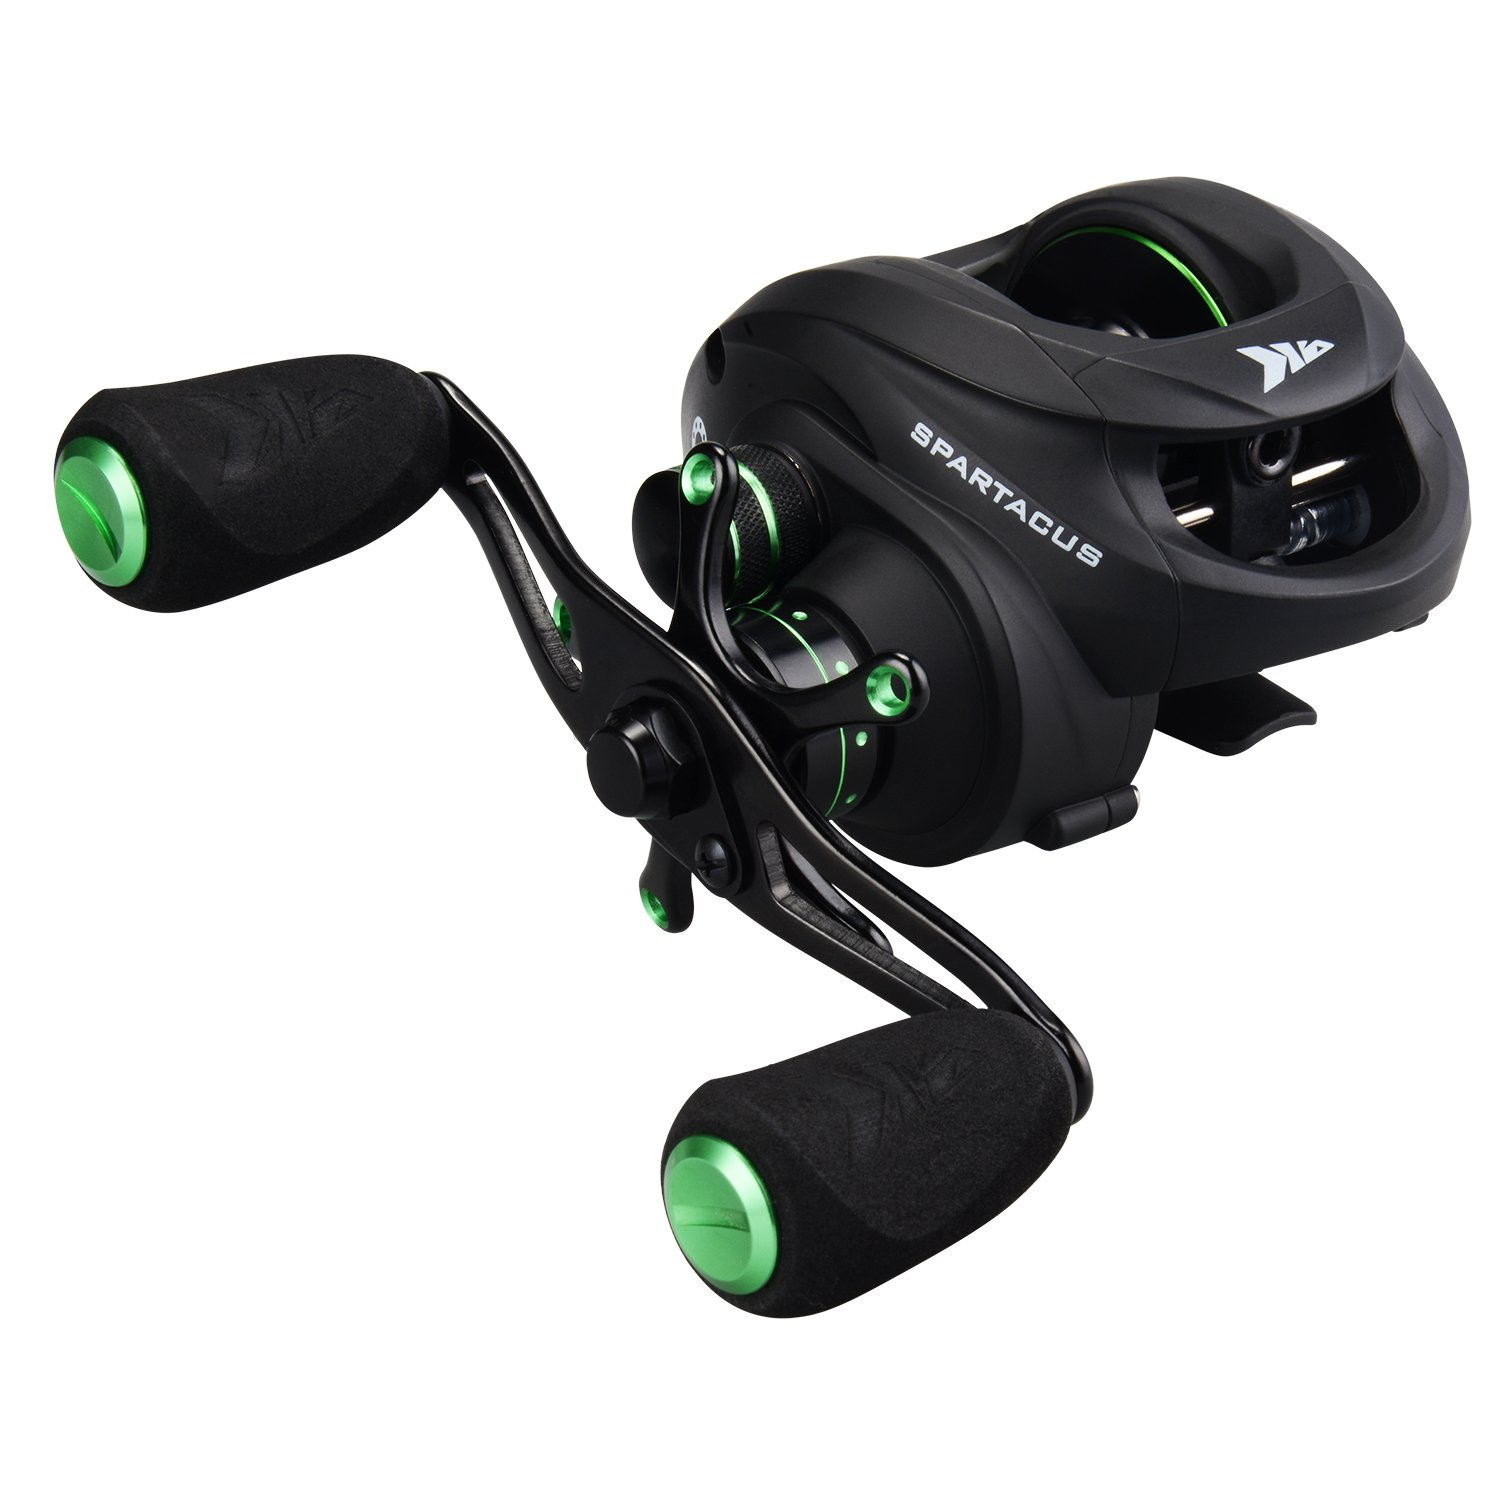 KastKing Spartacus Baitcasting Fishing Reel Ultra Smooth 17.5 LB Carbon Fiber Drag, 6.3:1 Gear Ratio,11 + 1 Shielded Ball Bearings, Rubber Cork Handle Knobs (D:Chartreuse Green: Right Handed Reel)